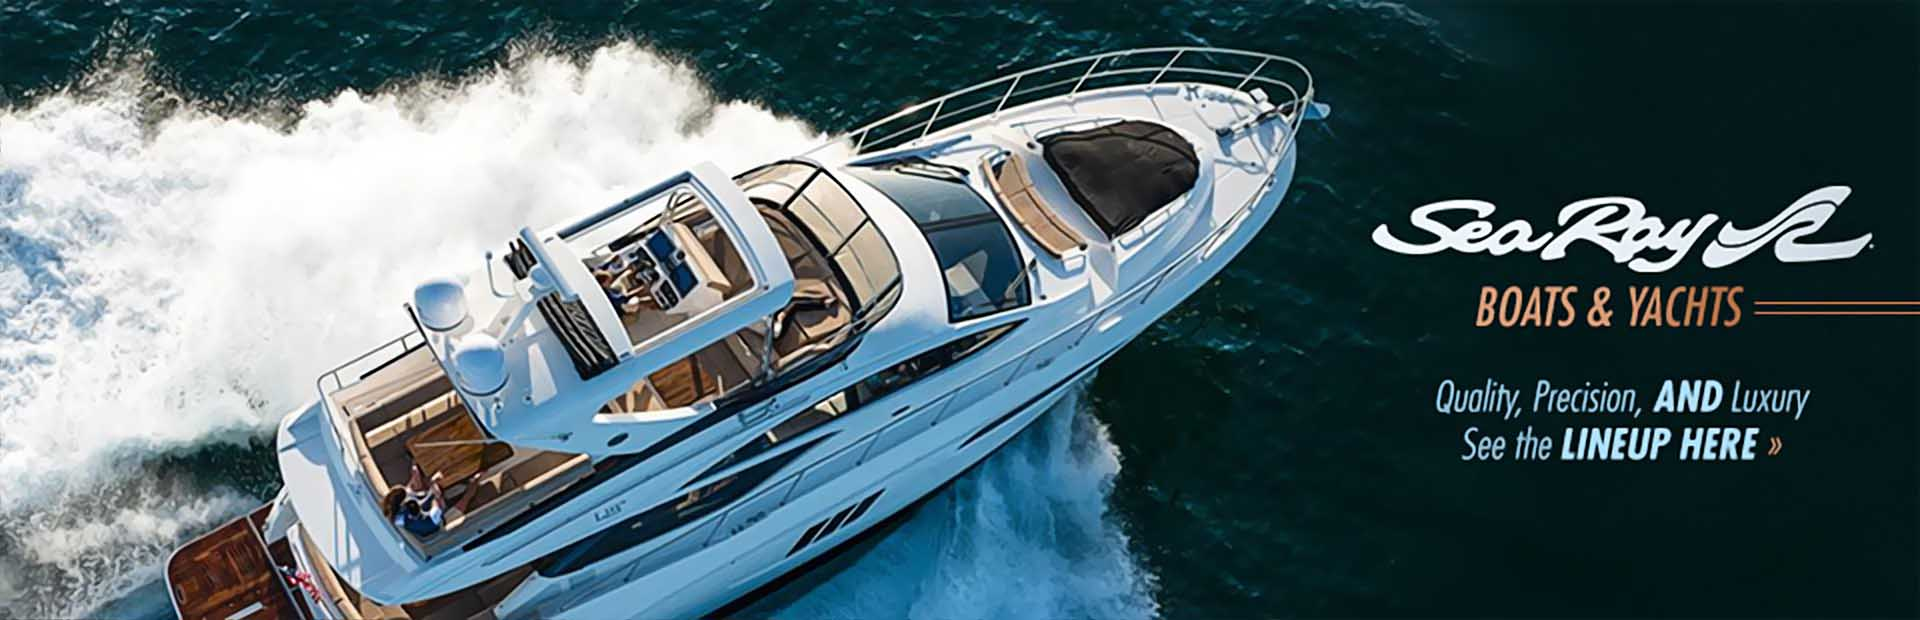 Sea Ray Boats and Yachts: Click here to view the models.